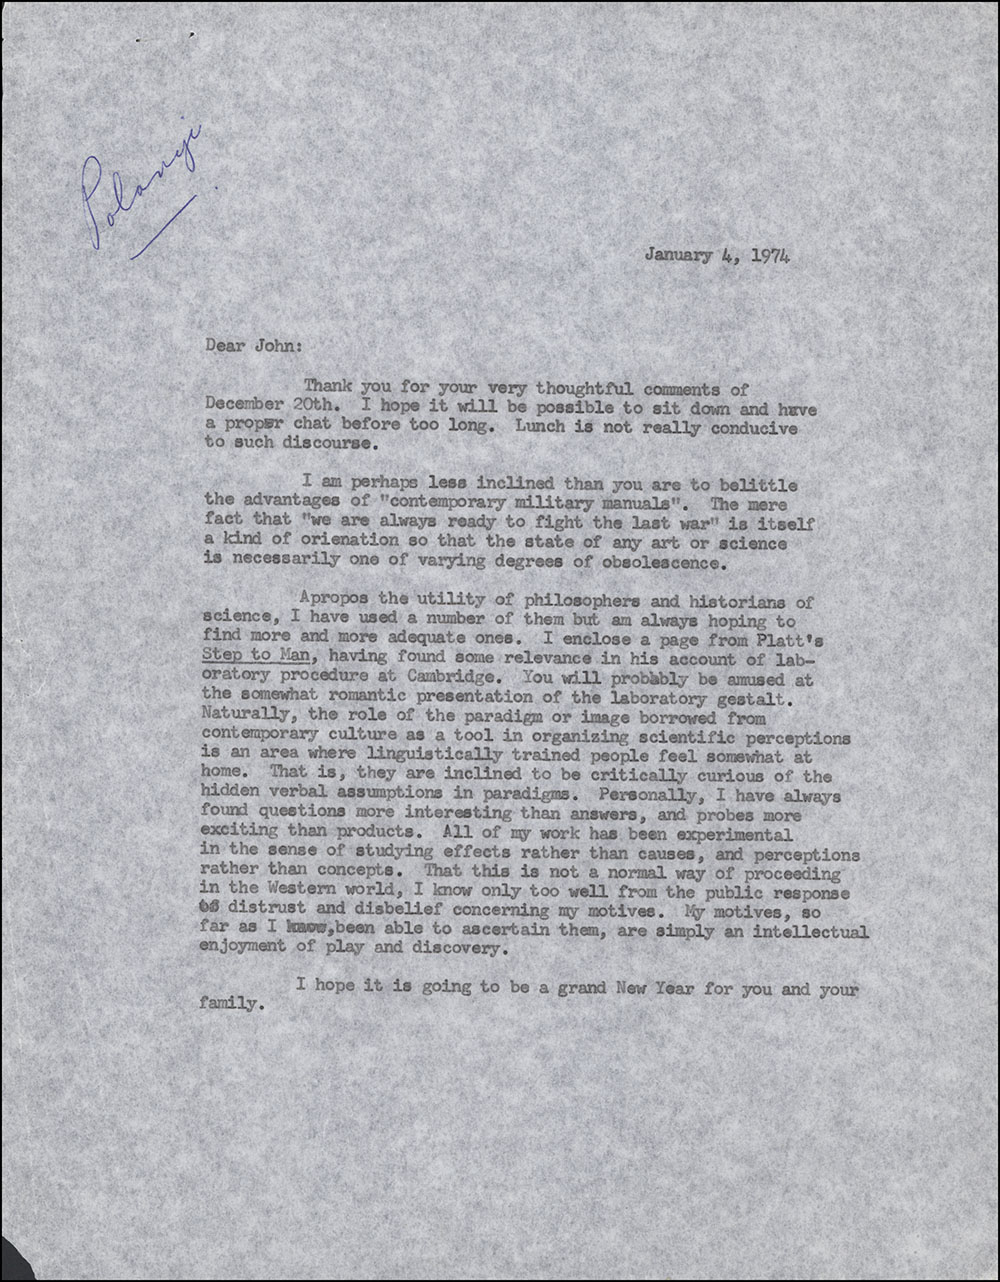 Letter dated January 4, 1974 to John Polanyi